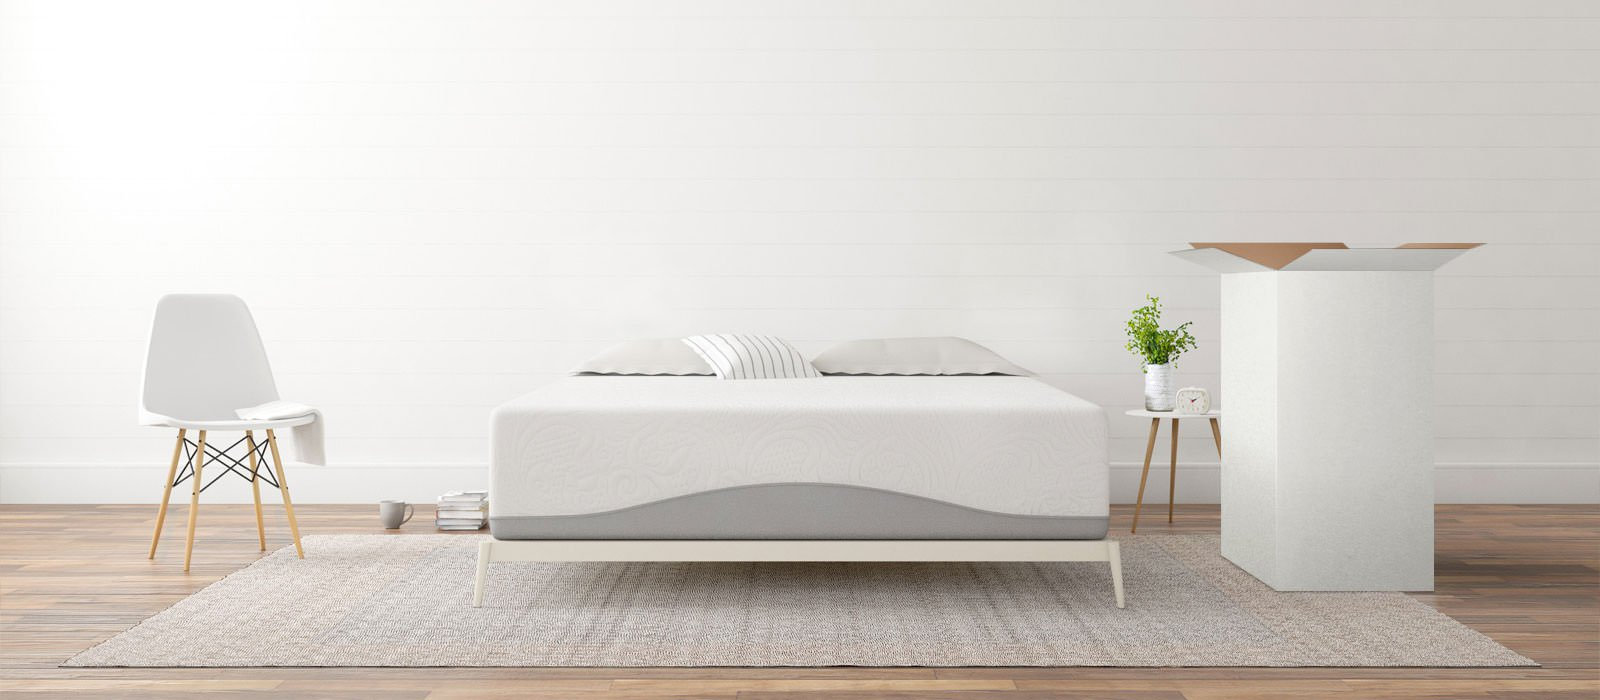 The Facts on Memory Foam and OffGassing